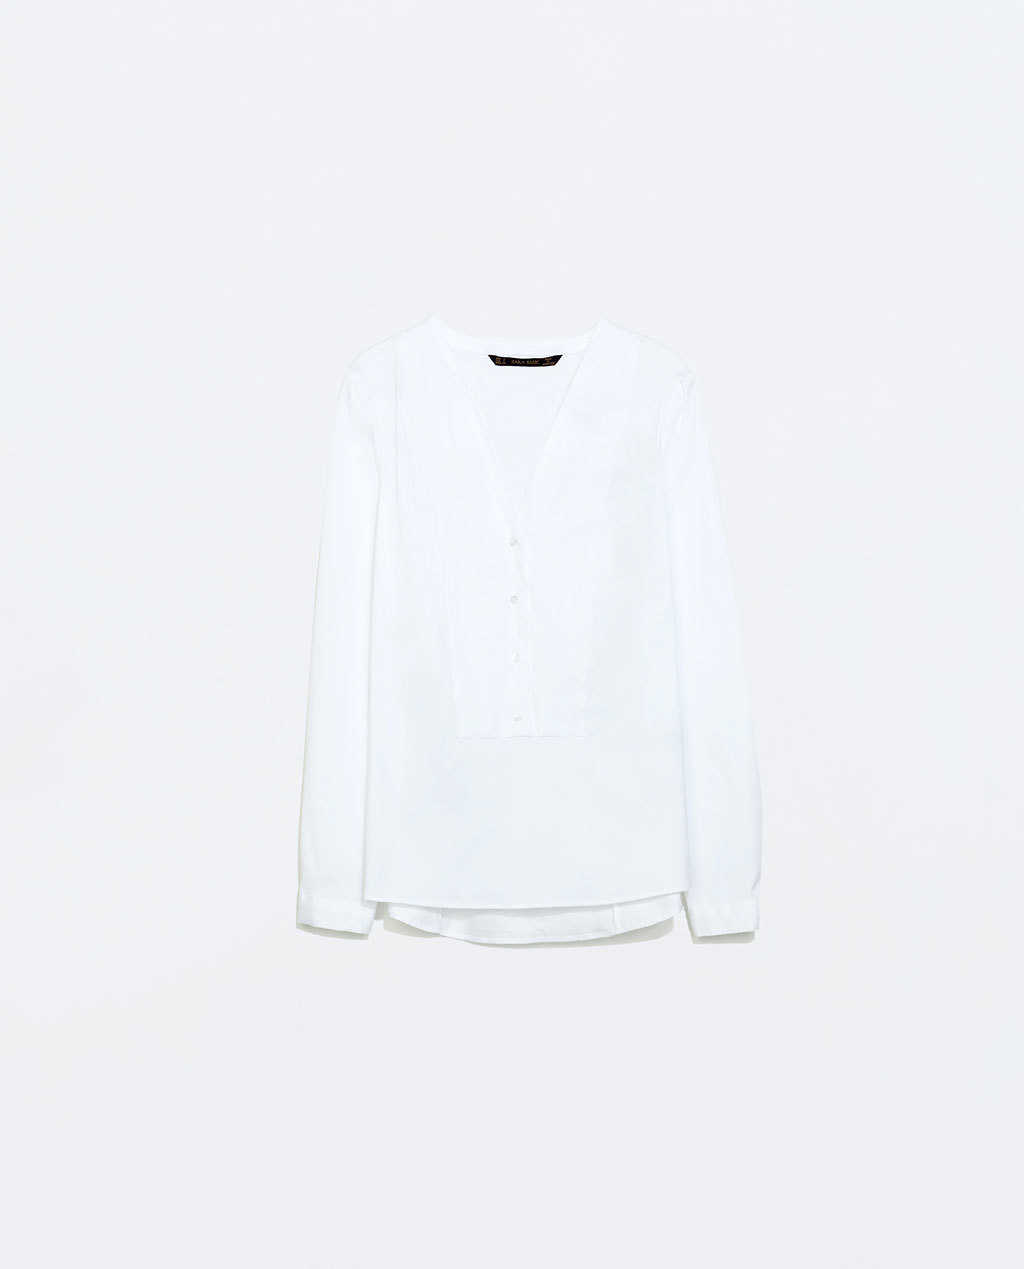 V Neck Twill Shirt - neckline: low v-neck; pattern: plain; style: blouse; bust detail: buttons at bust (in middle at breastbone)/zip detail at bust; predominant colour: white; occasions: work, creative work; length: standard; fibres: cotton - stretch; fit: straight cut; sleeve length: long sleeve; sleeve style: standard; texture group: cotton feel fabrics; pattern type: fabric; season: a/w 2014